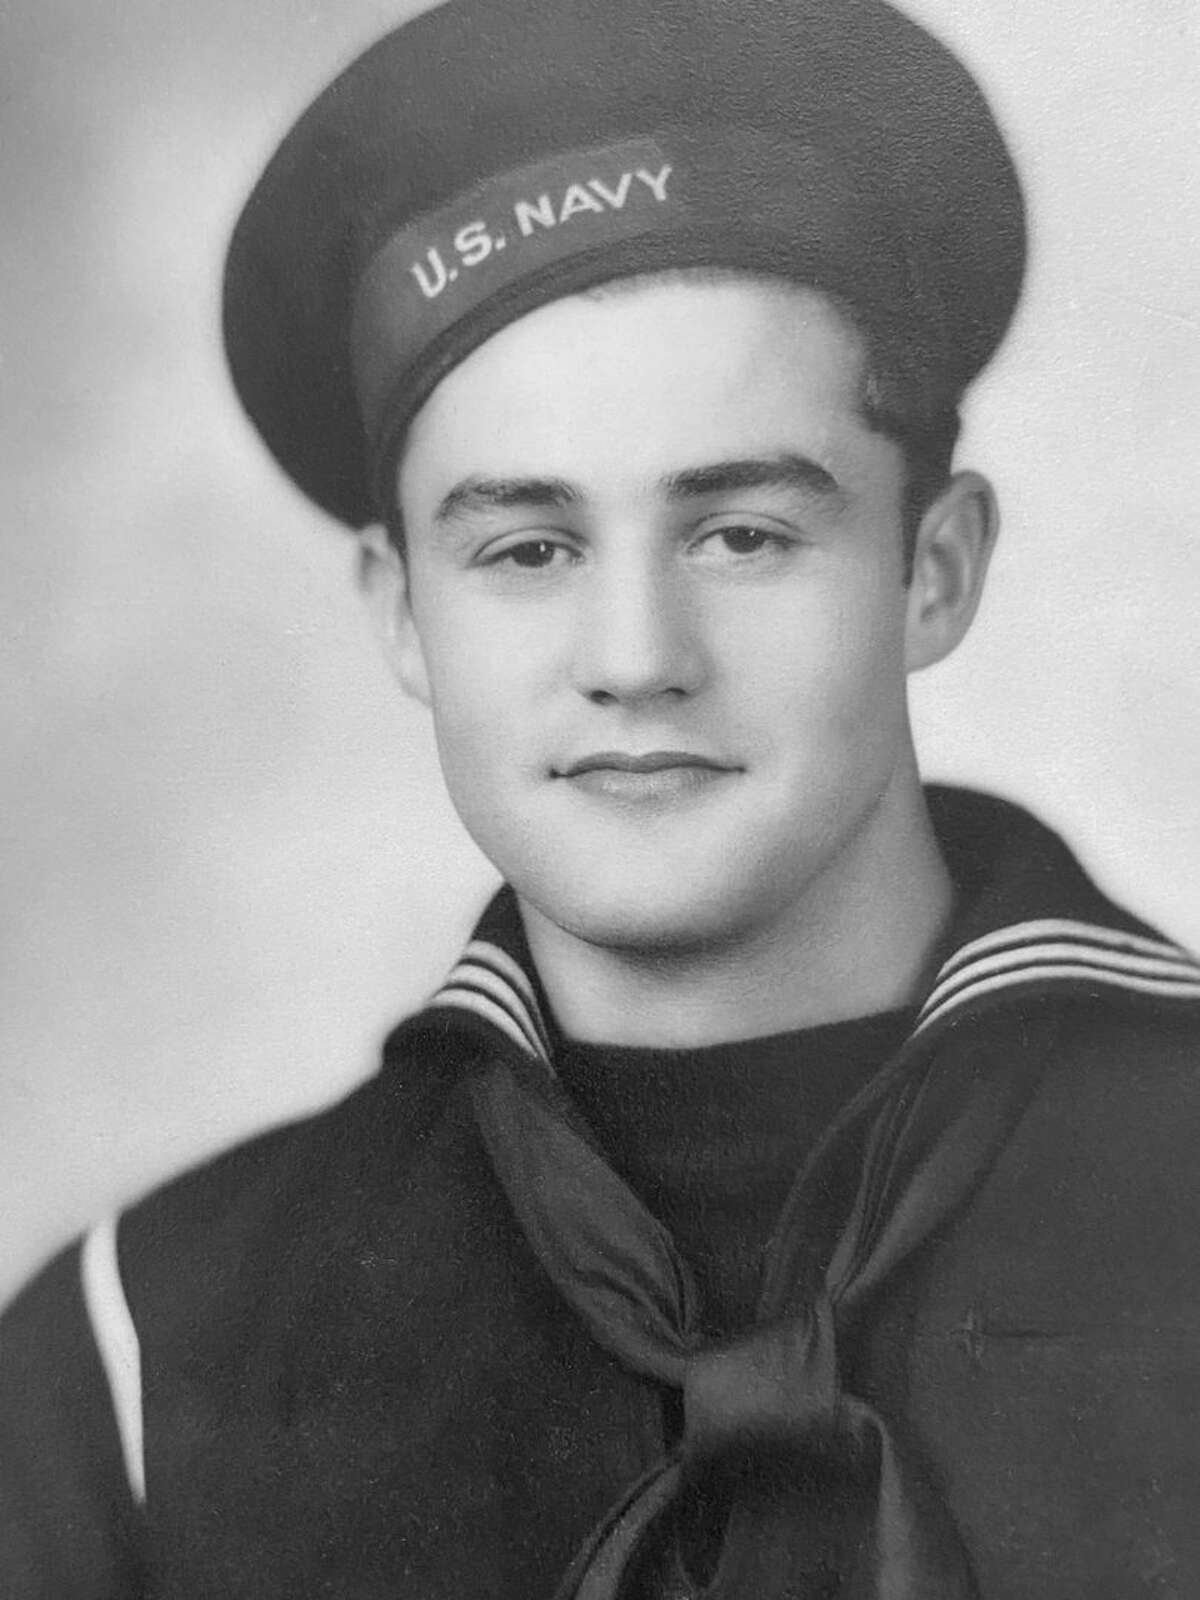 Robert Tschirthart's headshot from when he served in the United States Navy during World War II. Tschirthart turns 100 later this month and his family wants birthday cards sent to the assisted living facility he currently resides. (Courtesy Photo)